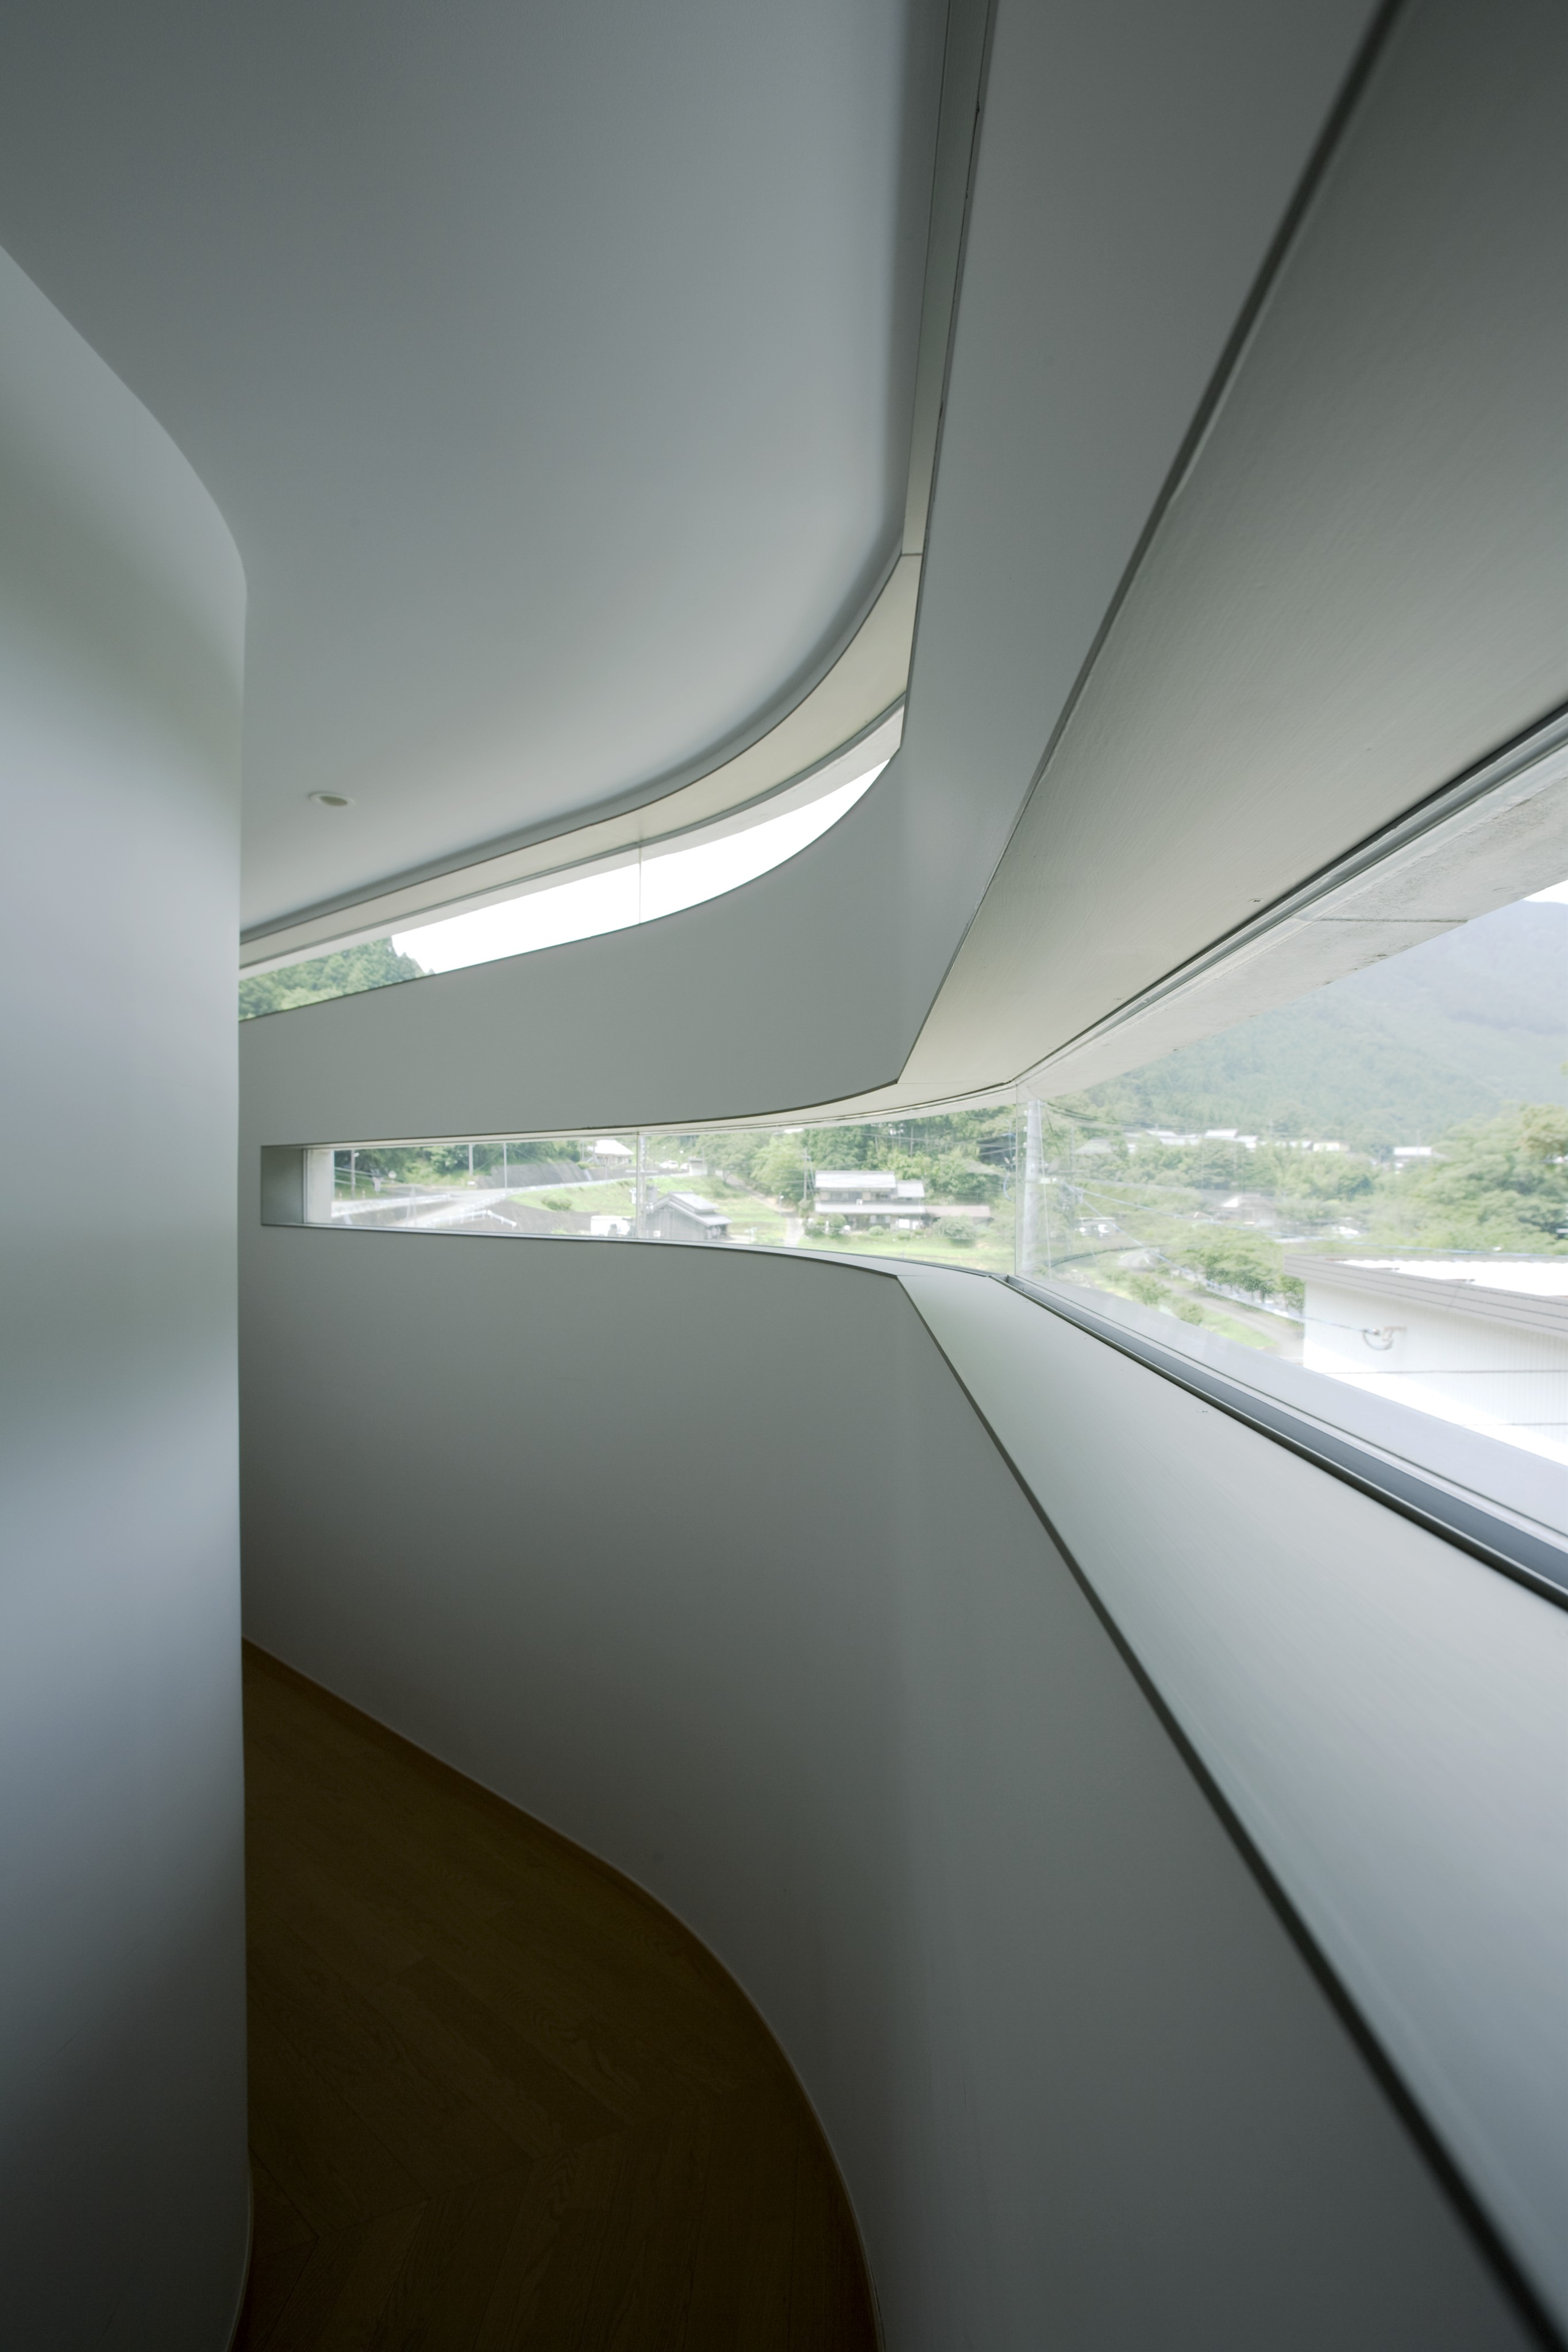 Main wraparound hallway holds expansive views through the slit windows, curving through the structure on every side.